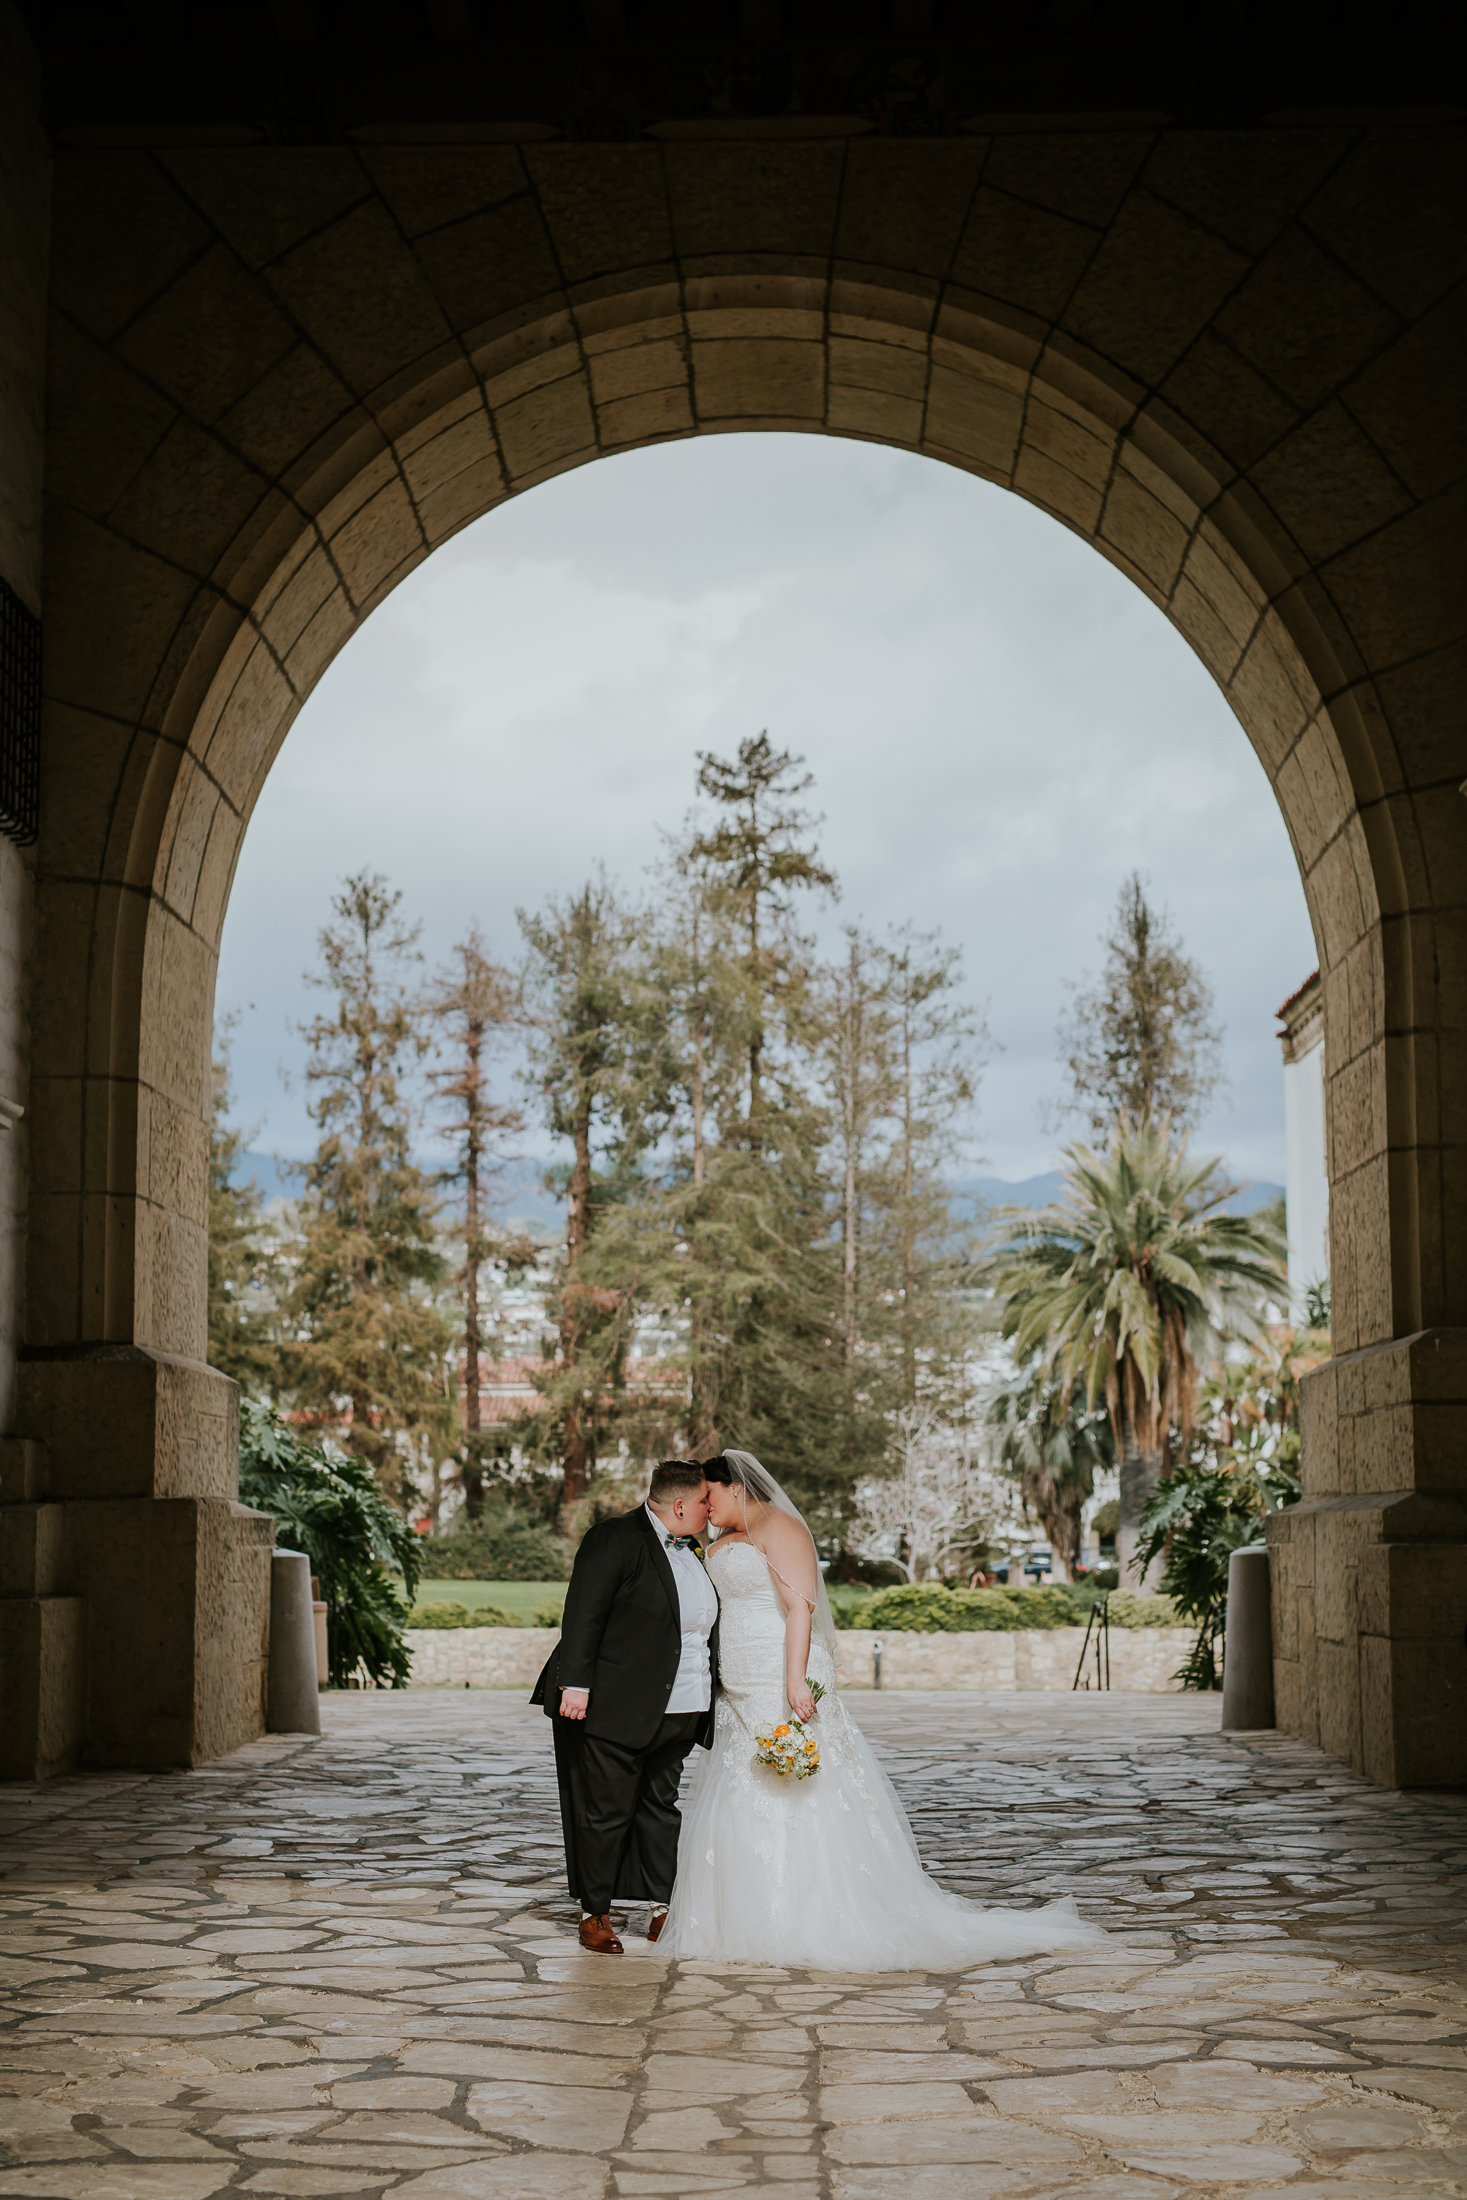 Dawn and Kate Santa Barbara courthouse wedding photographer-2.jpg